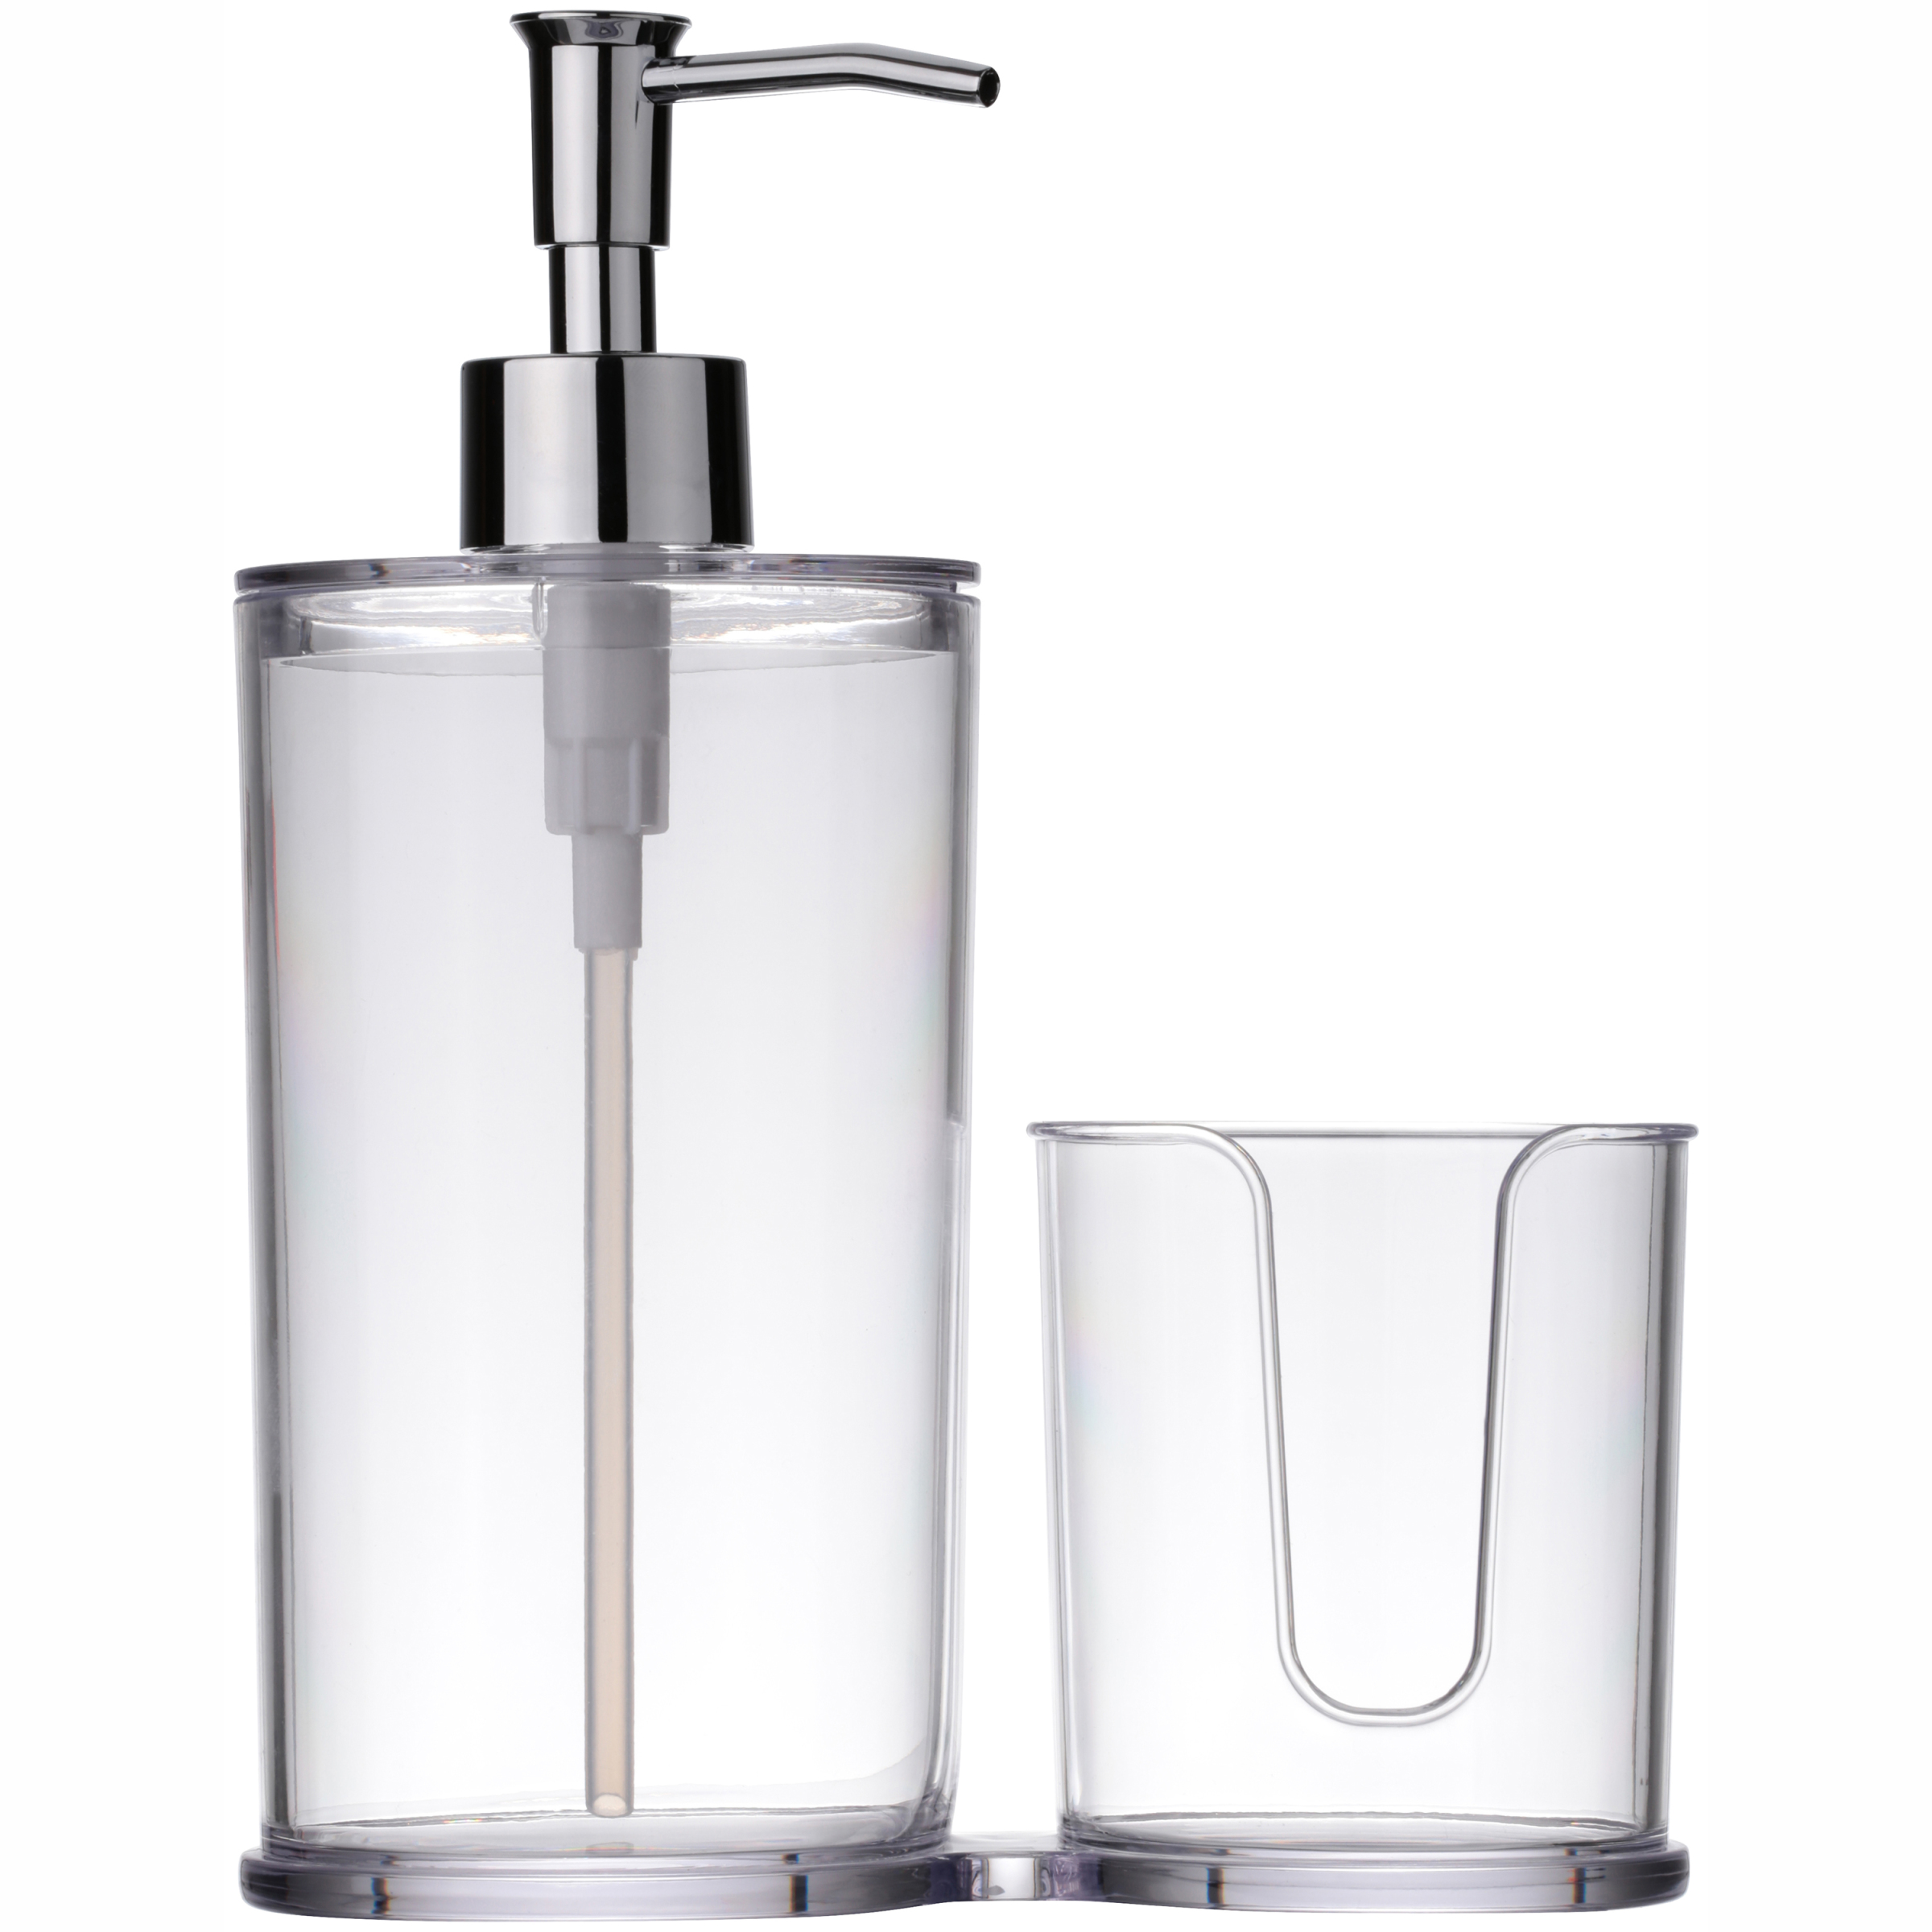 Mainstays True Color Clear Mouthwash Dispenser & Cup Holder, 2 Piece